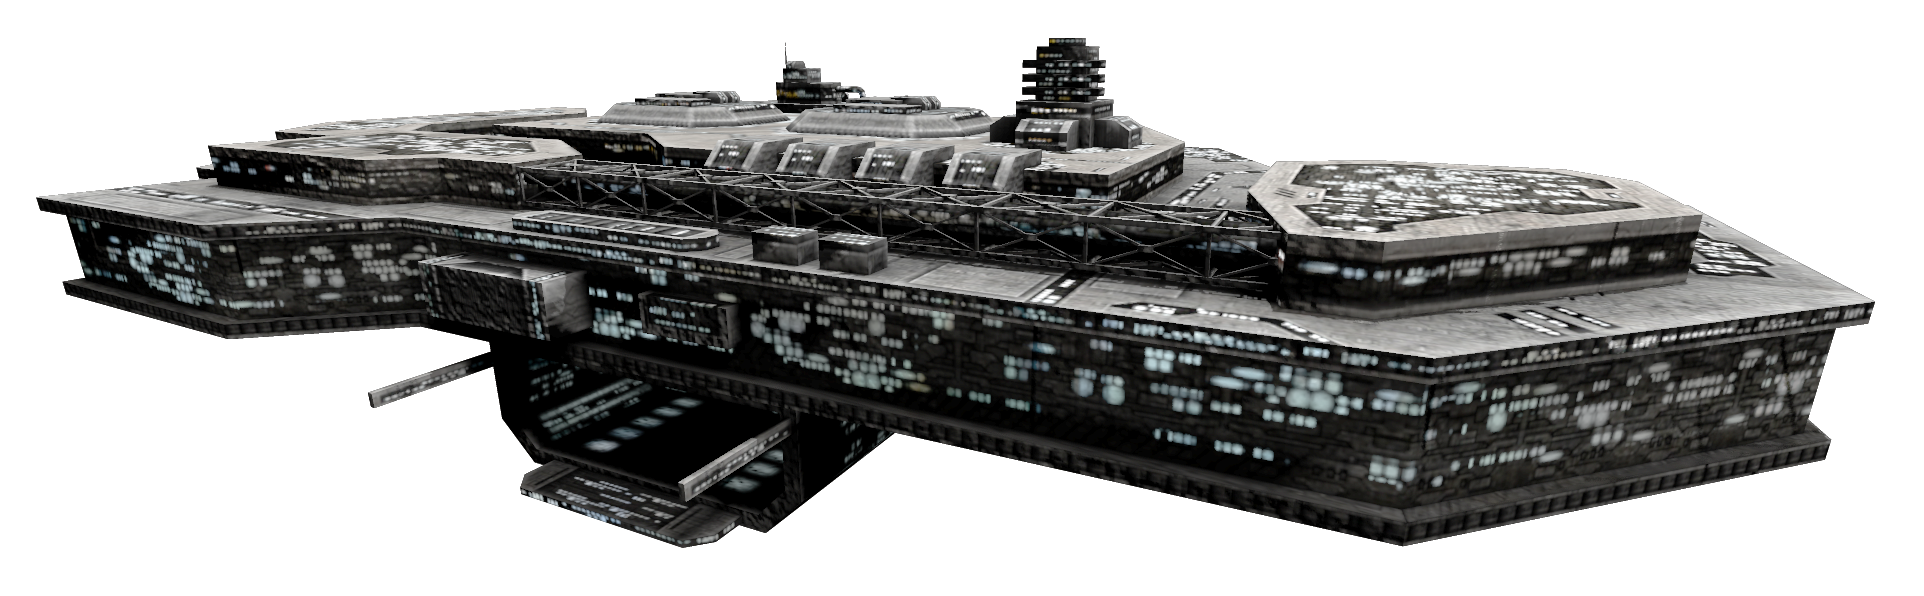 Spaceship Station 4_0@2x.png (1924×596) - Ufo PNG HD